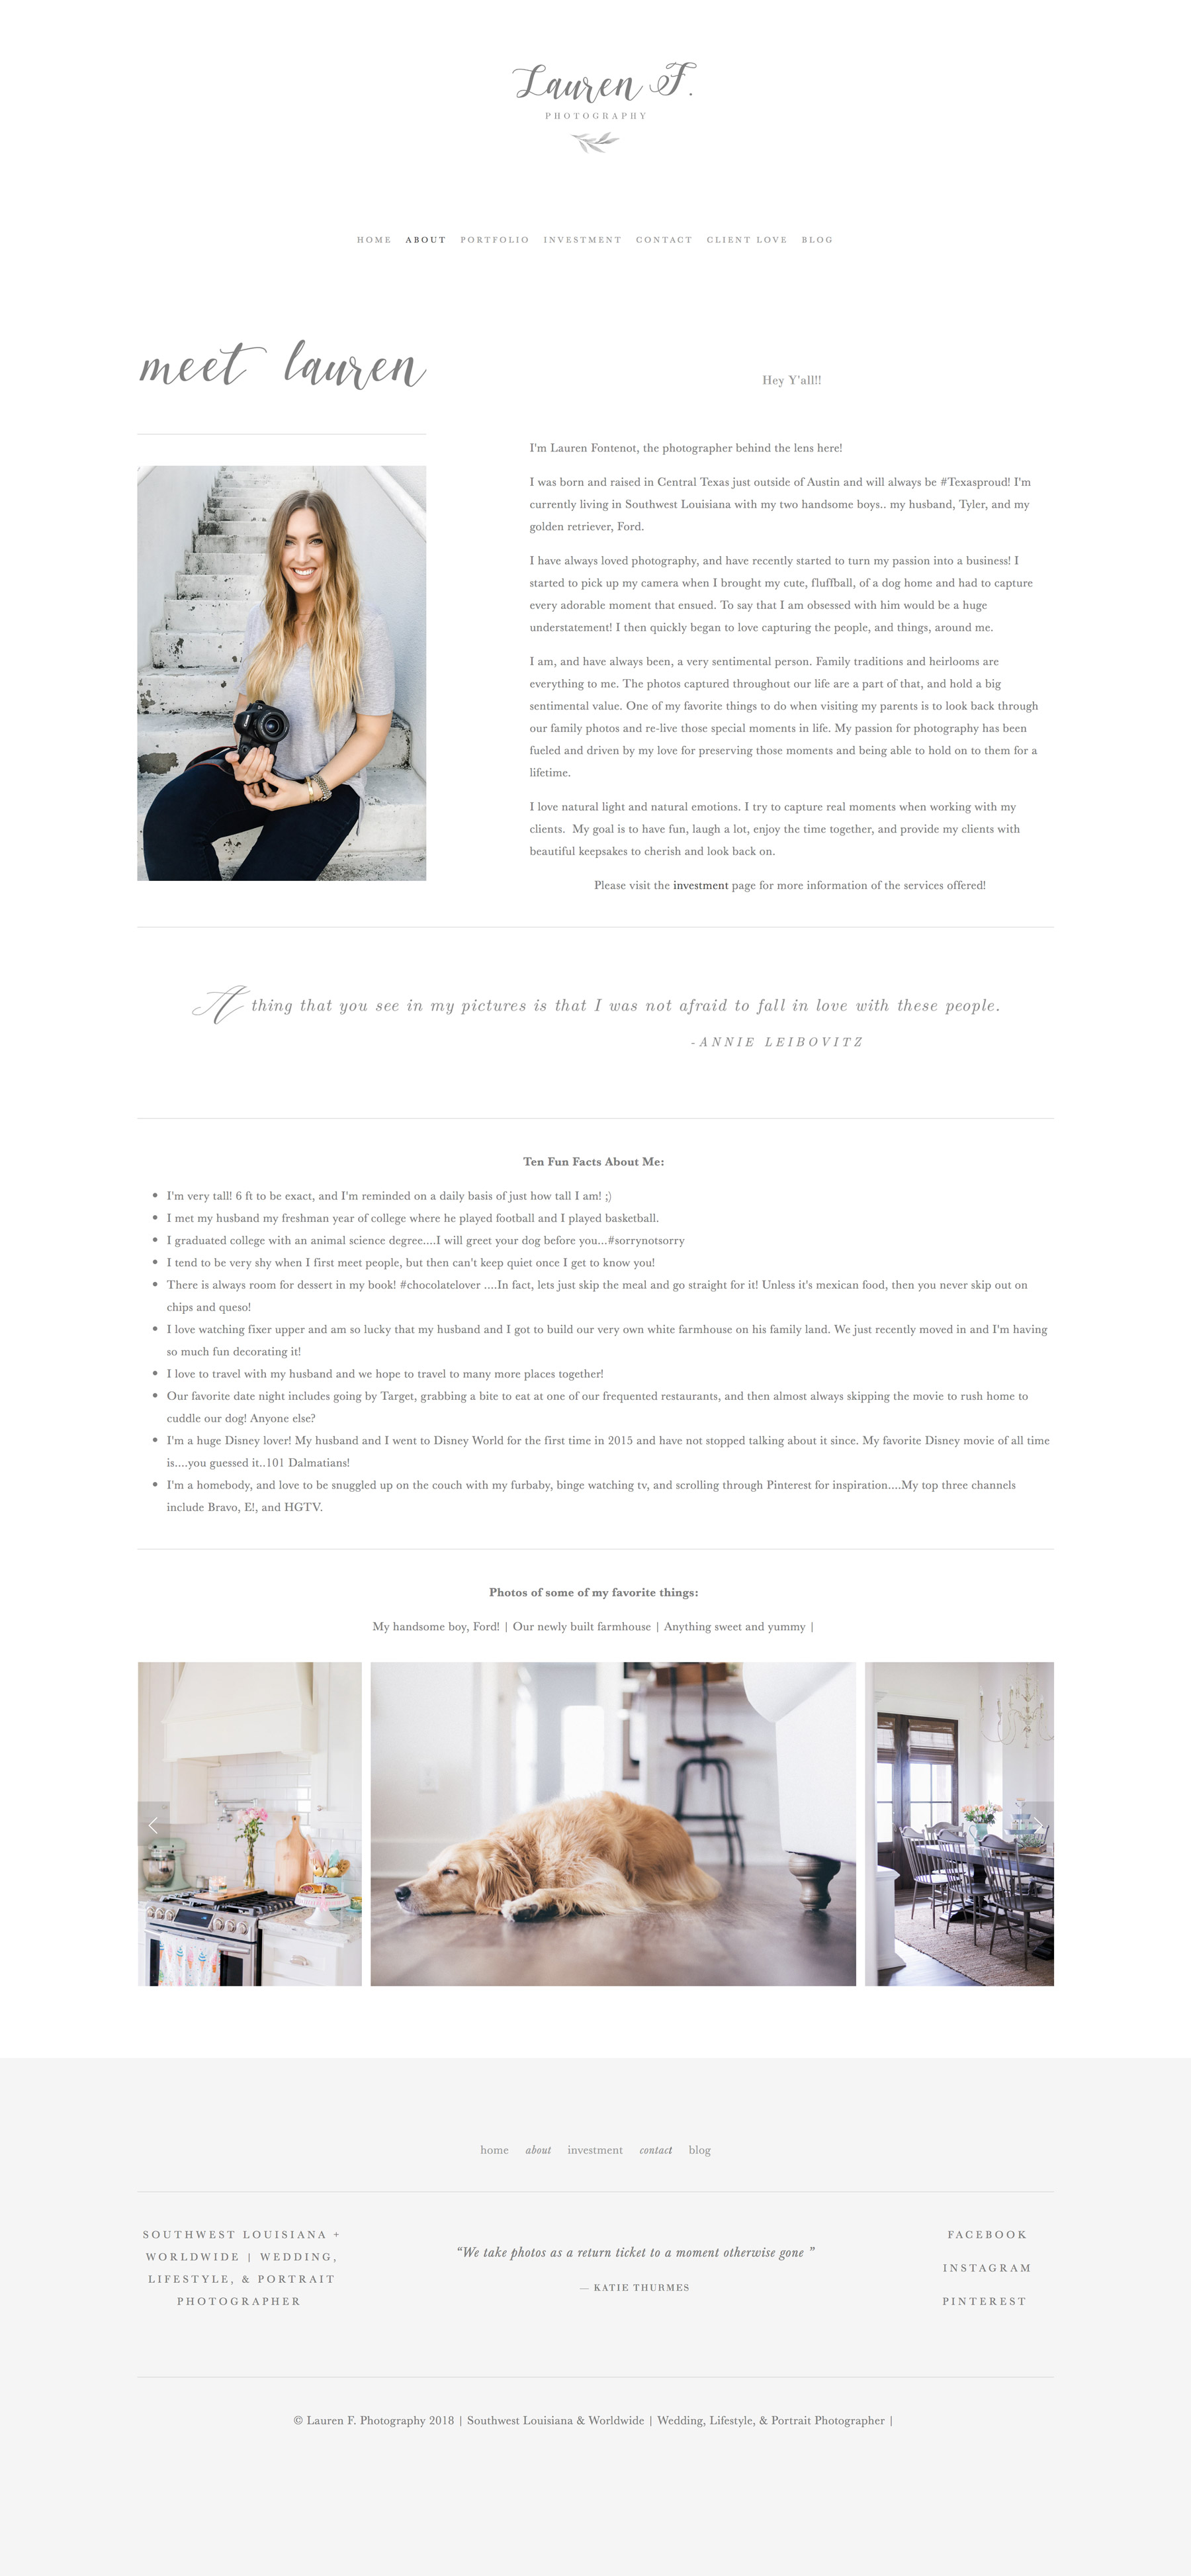 squarespace-website-design-templates-3.jpg